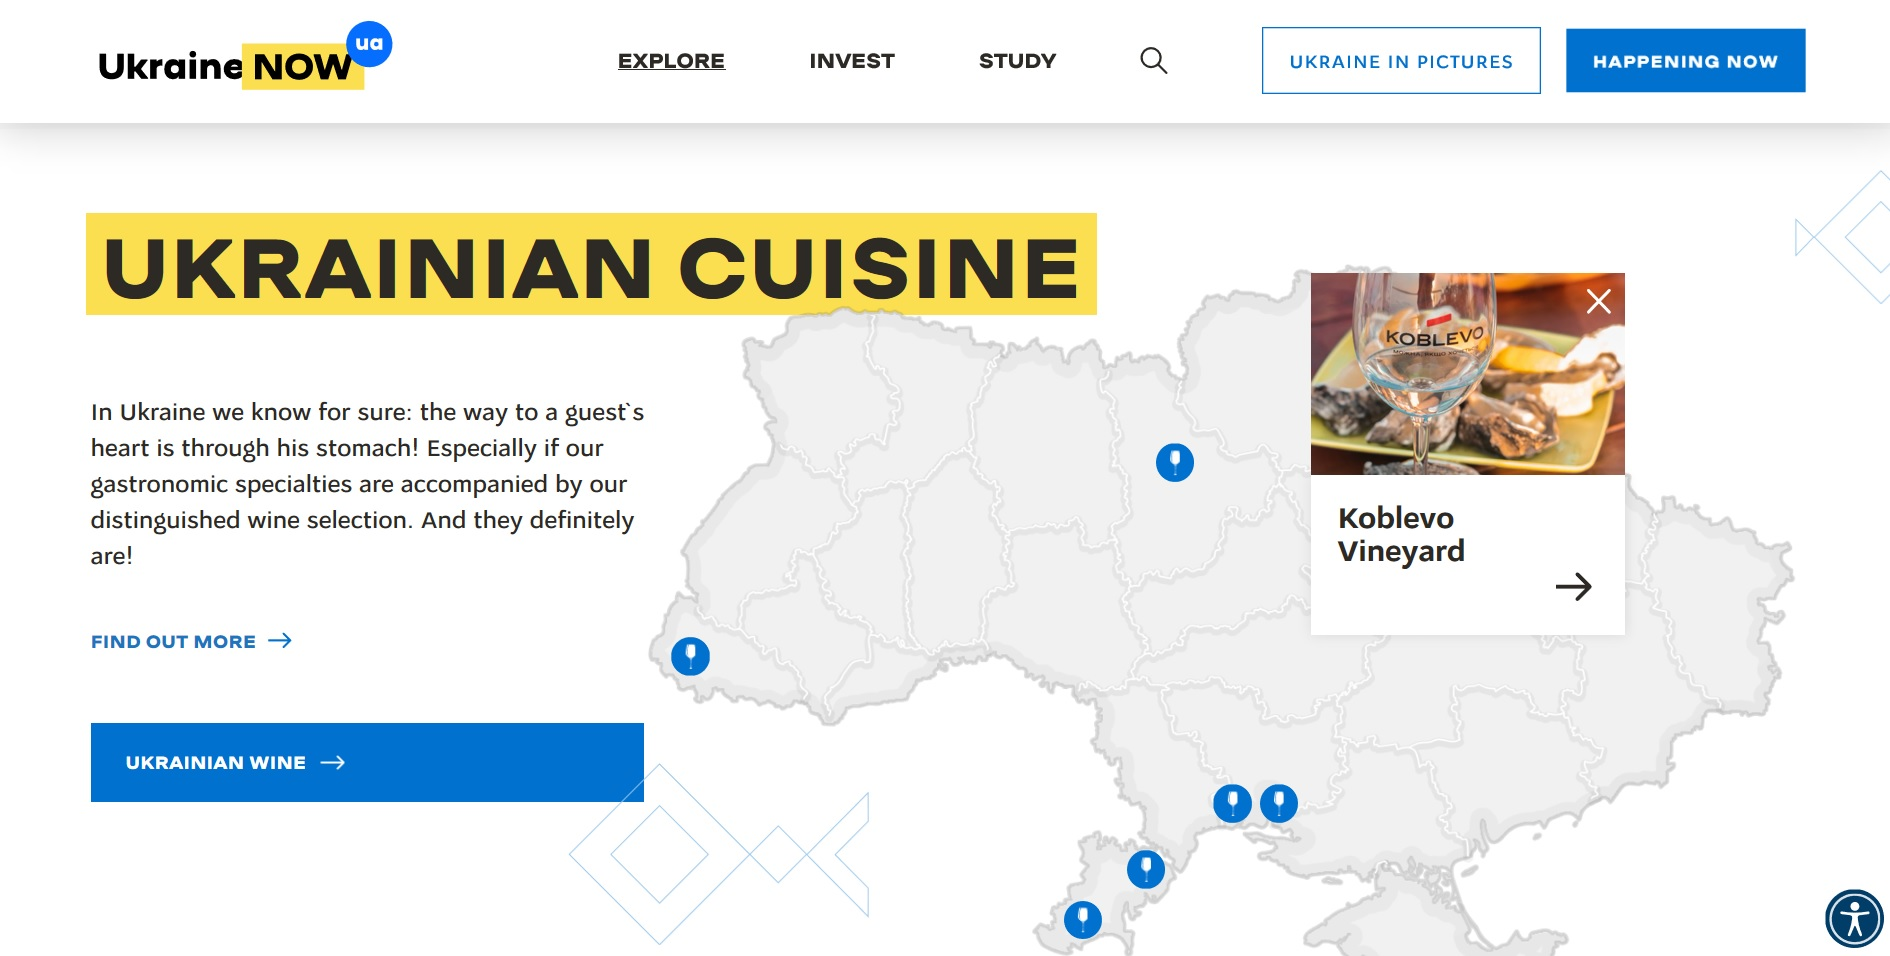 KOBLEVO WINERY WAS MENTIONED IN THE LIST OF THE BEST LOCATIONS FOR VISITING FOREIGN TOURISTS ON THE INFORMATION RESOURCE OF THE MINISTRY OF FOREIGN AFFAIRS FROM THE UKRAINE NOW PROJECT!